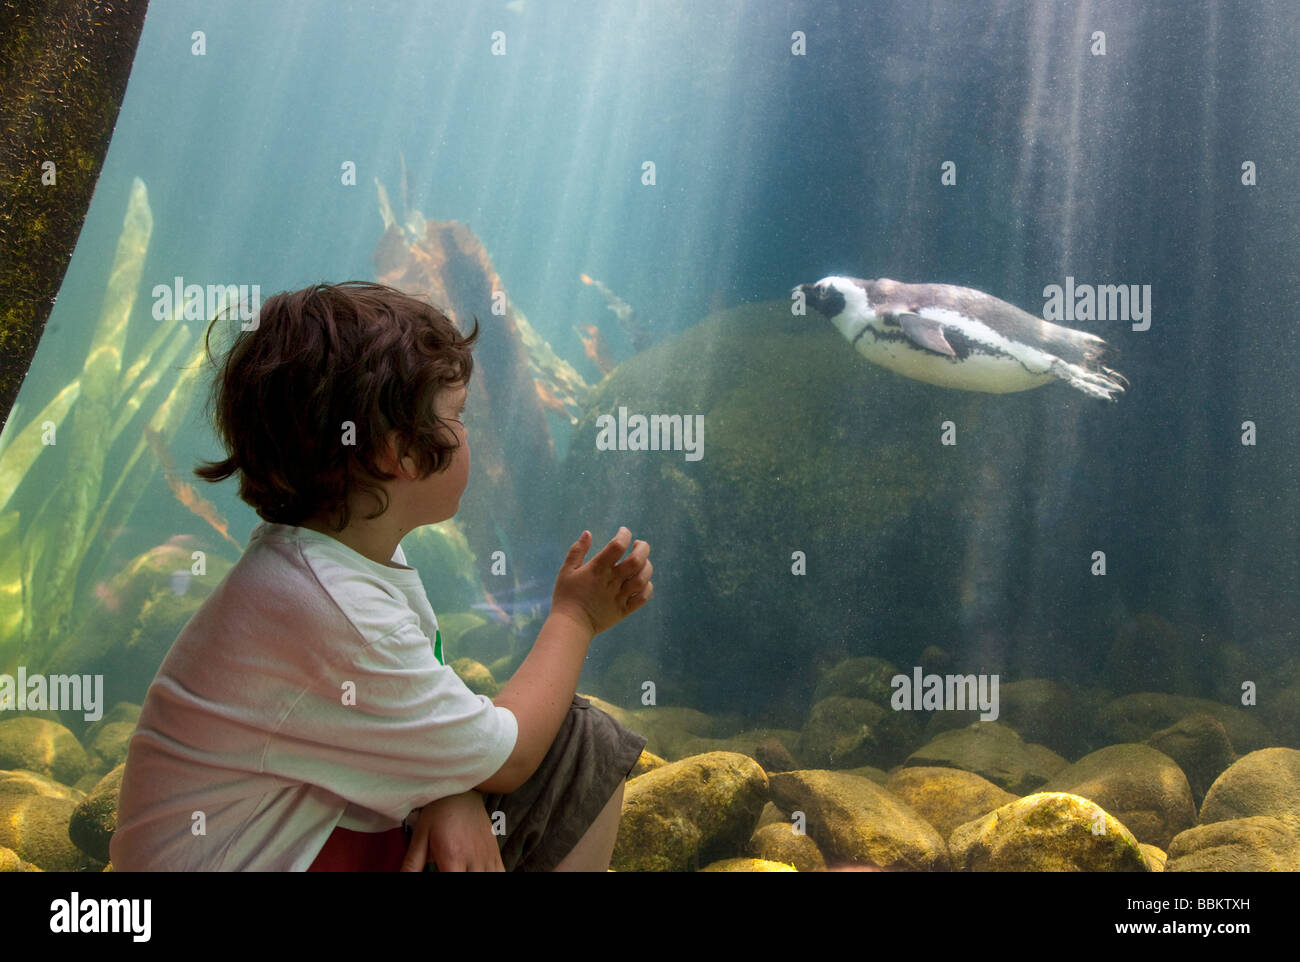 Little boy looking at penguins in aquarium at zoo with sunlight. - Stock Image